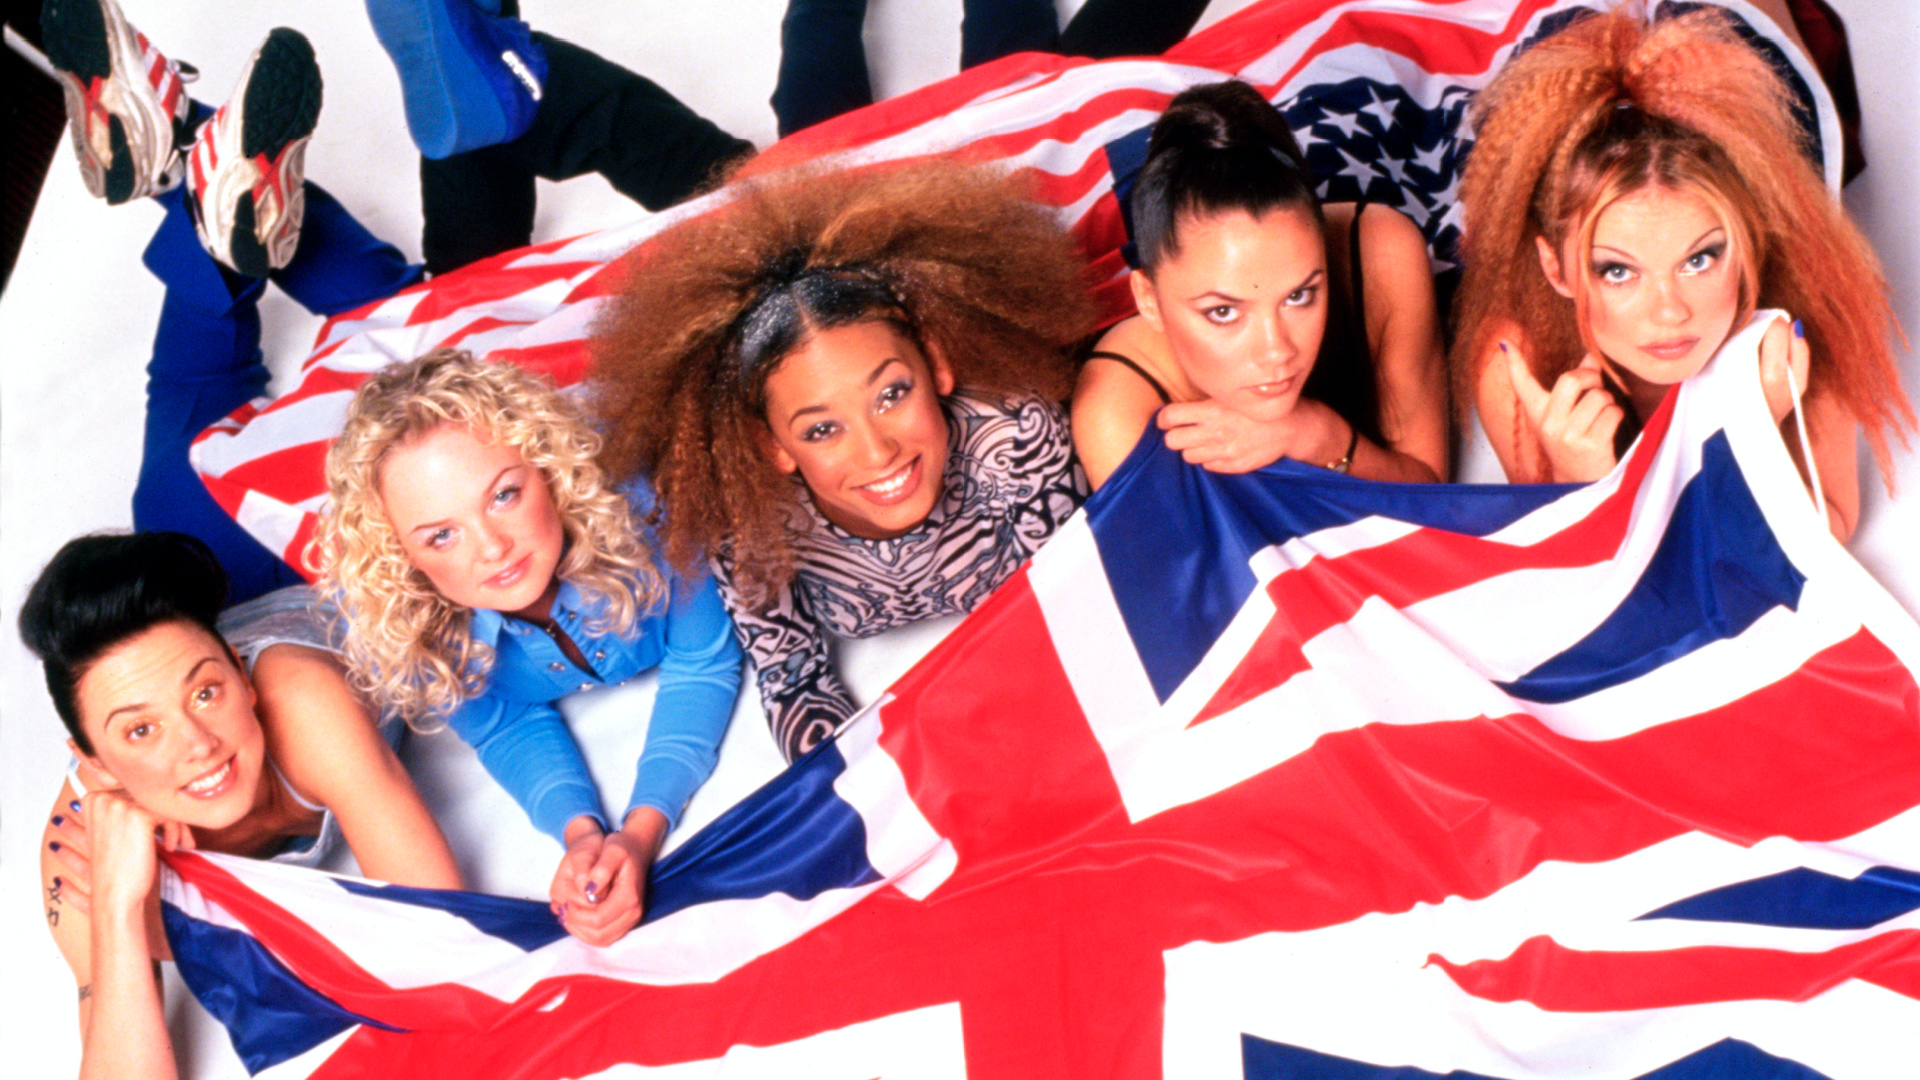 The Spice Girls, 25 years after Wannabe: take a look at their journey